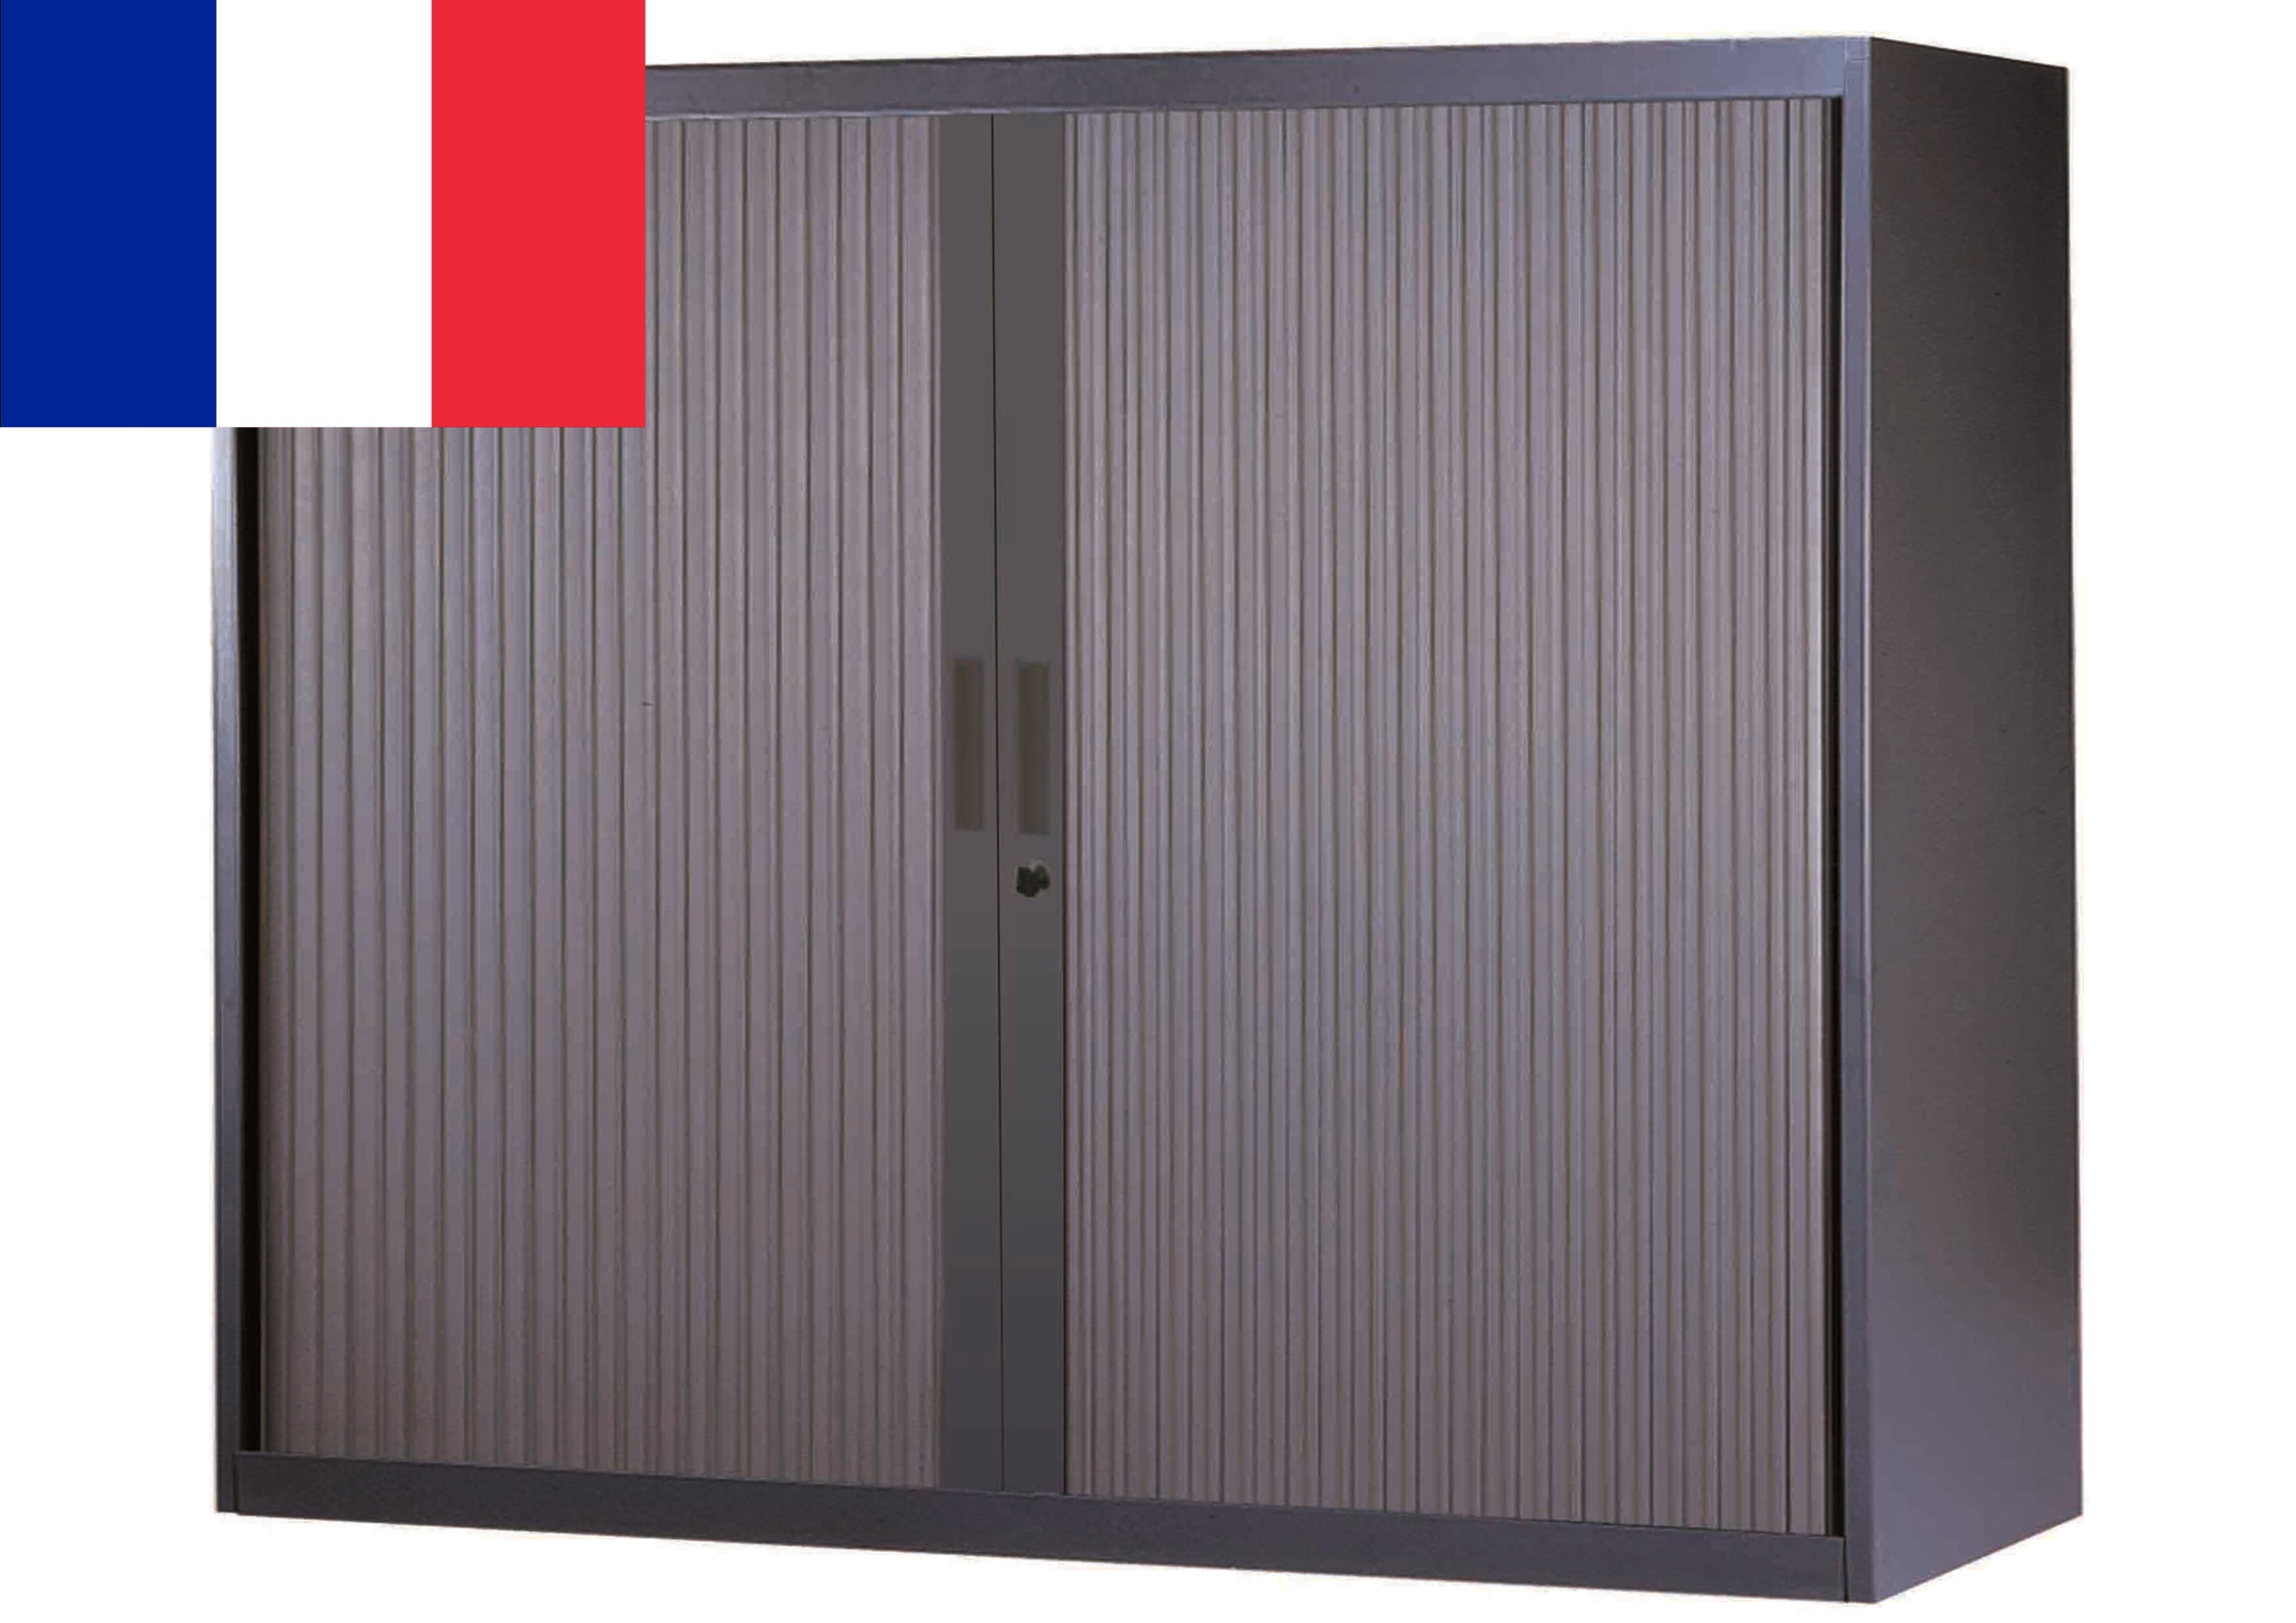 CORPS ANTHRACITE RIDEAUX ANTHRACITE ARMOIRE BASSE